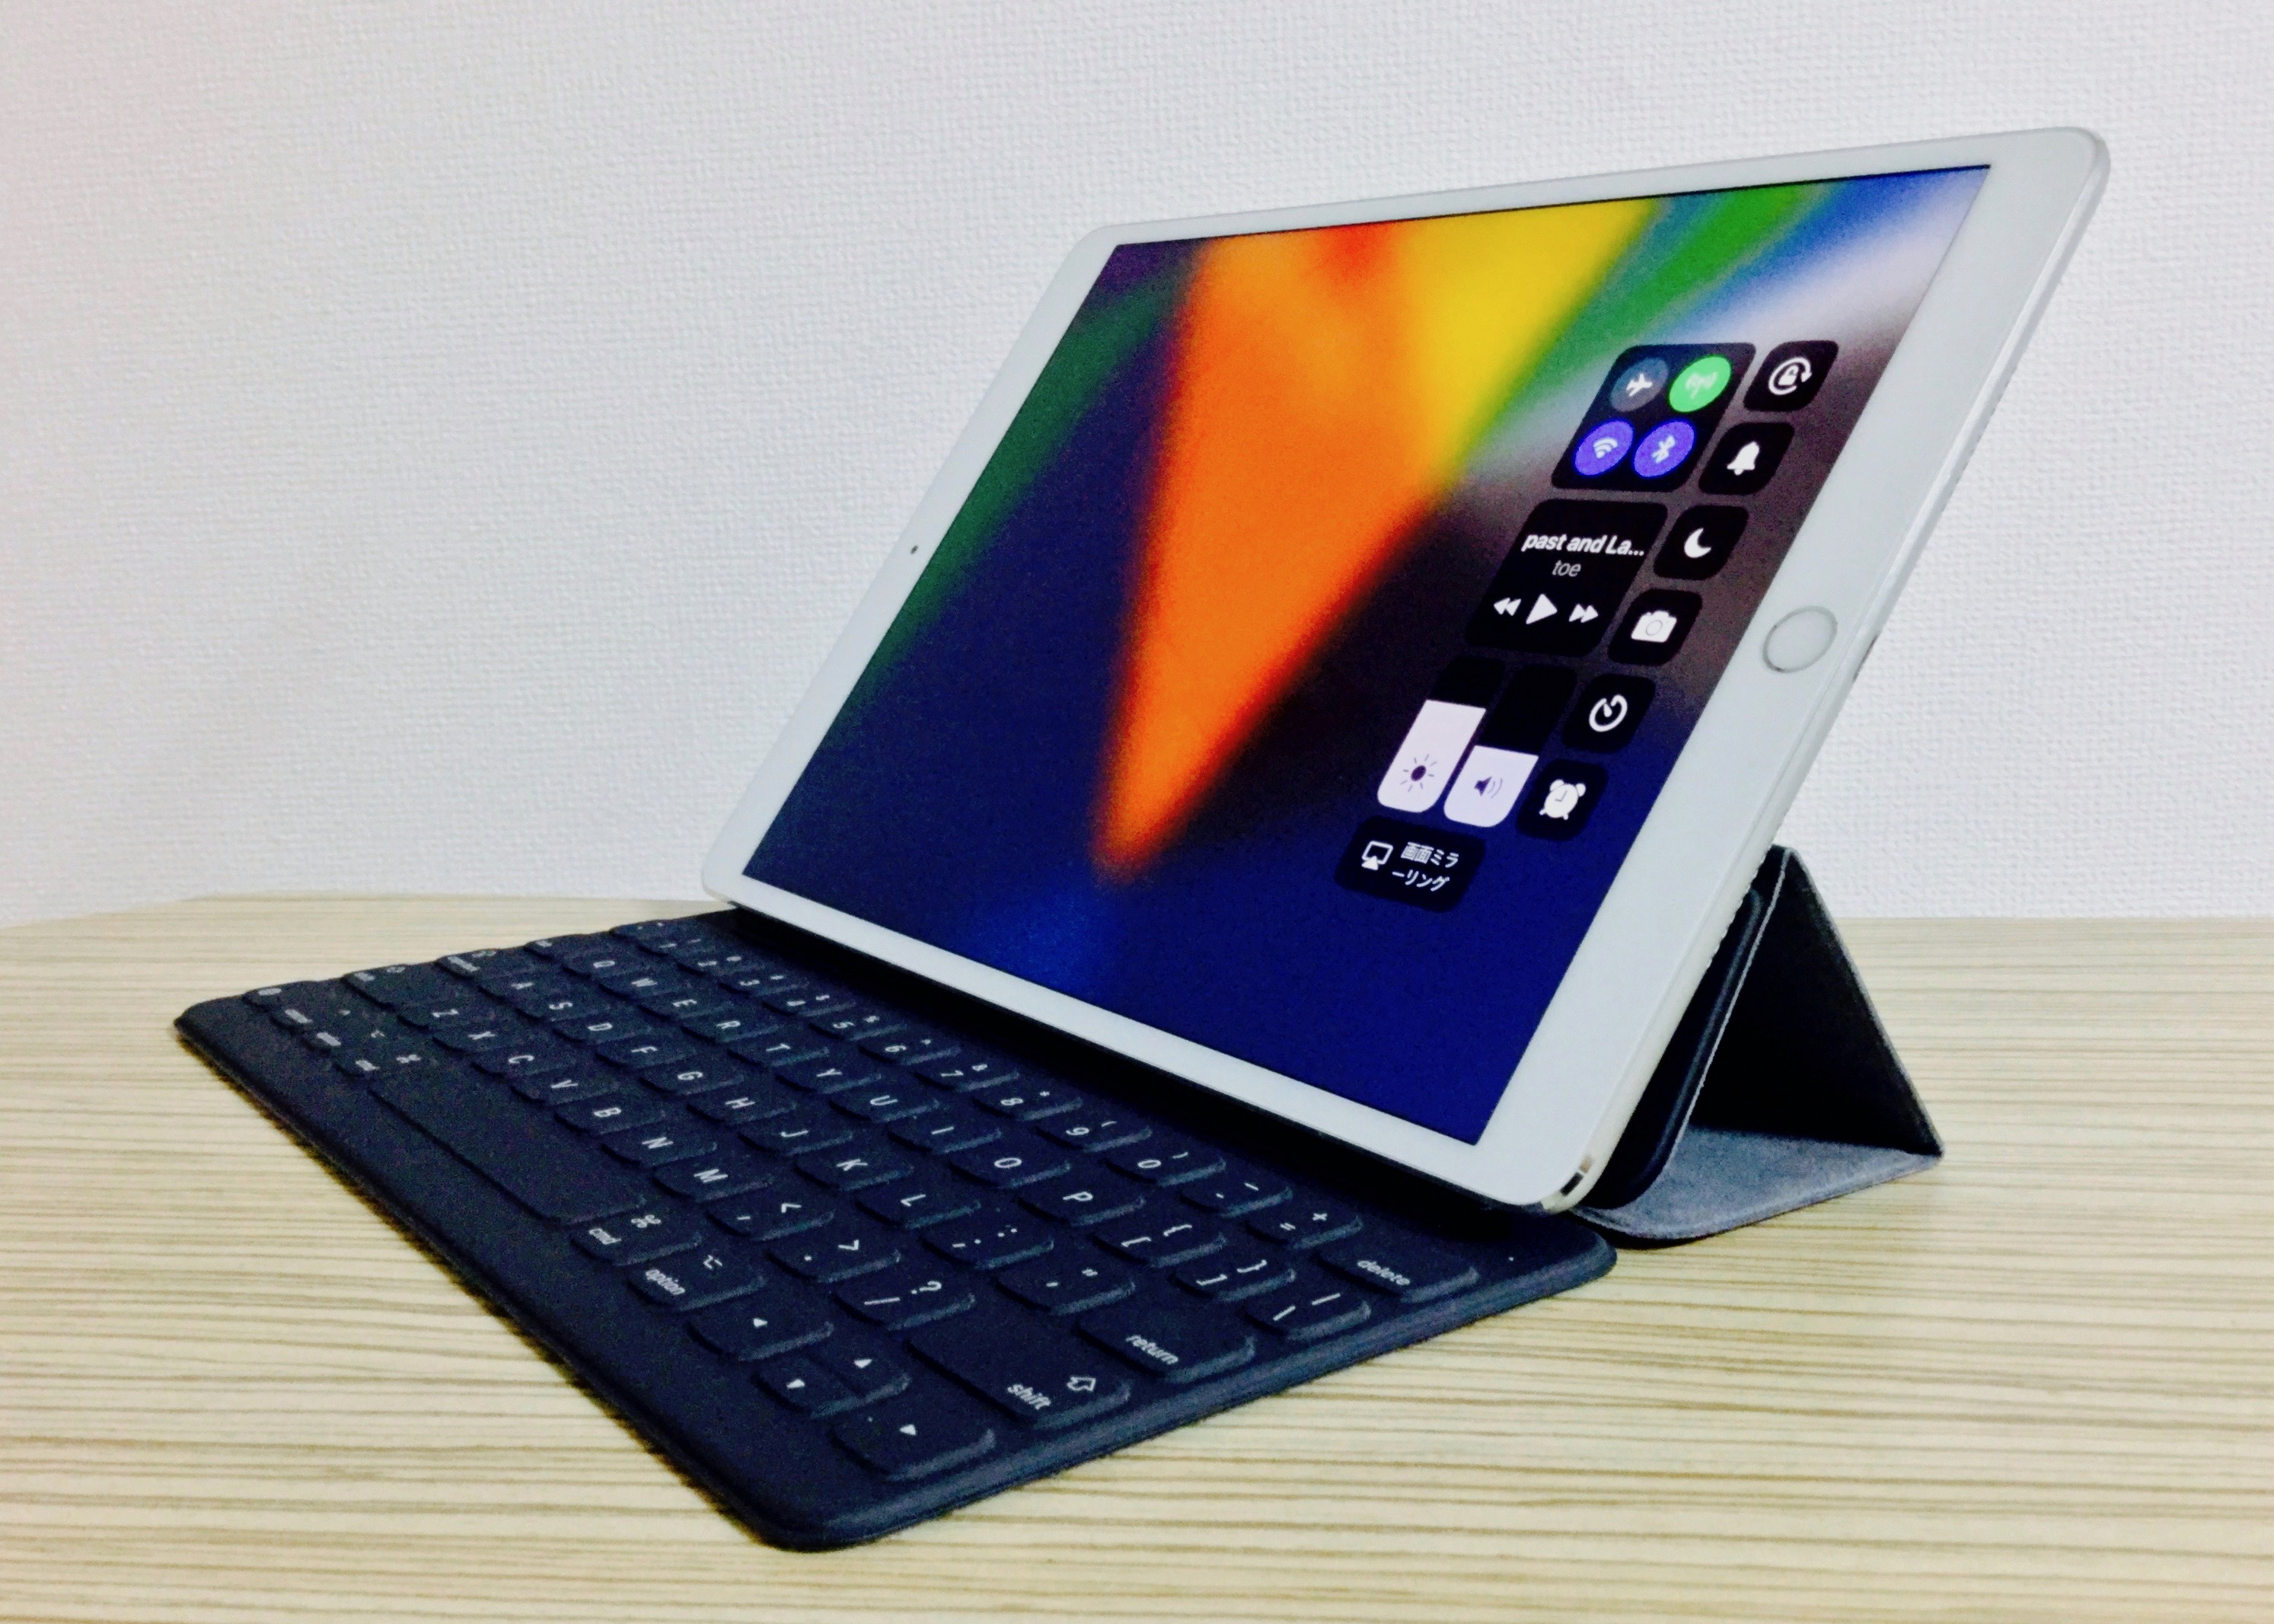 iPad Pro, 10.5, Smart Keyboard